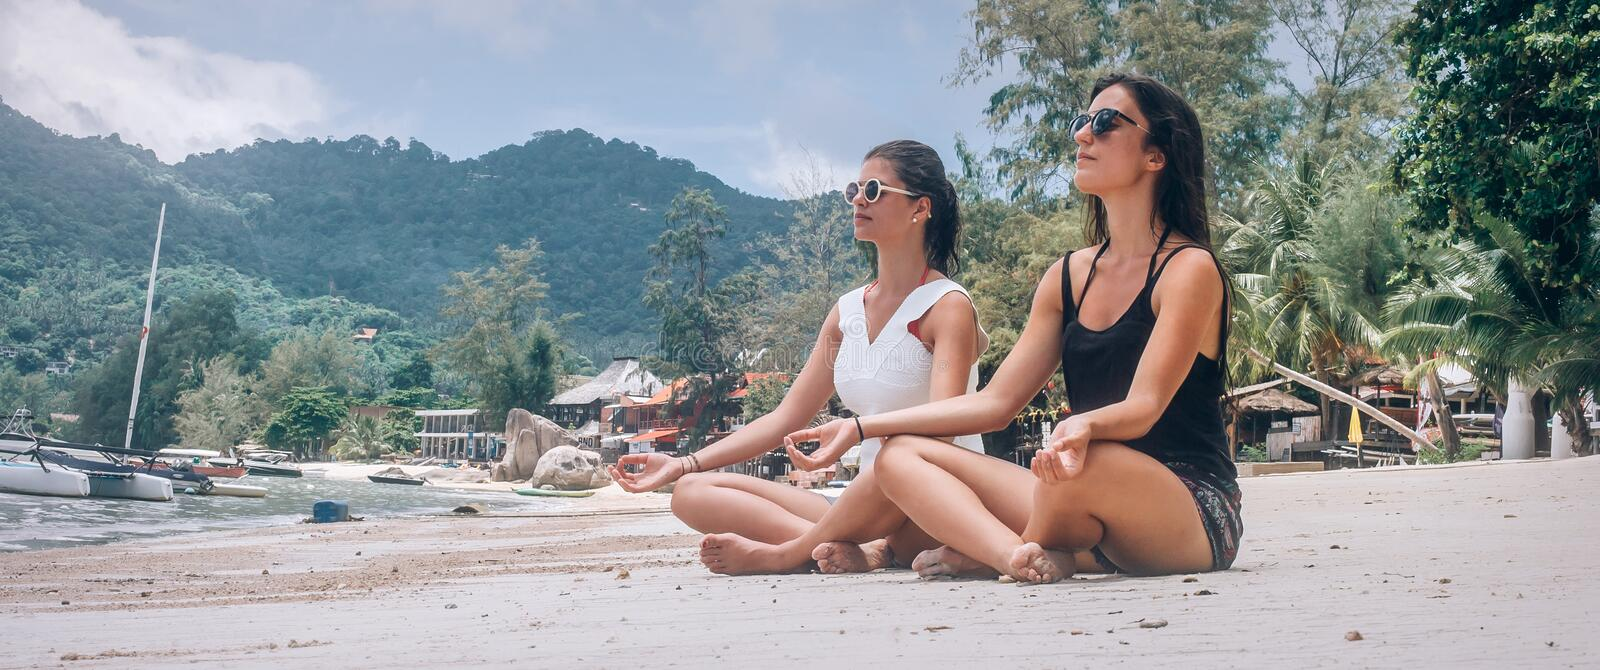 Two girlfriends doing yoga pose on beach in lotus position. Two girlfriends doing yoga pose on beach in summertime in lotus position. Spiritually concept royalty free stock photos